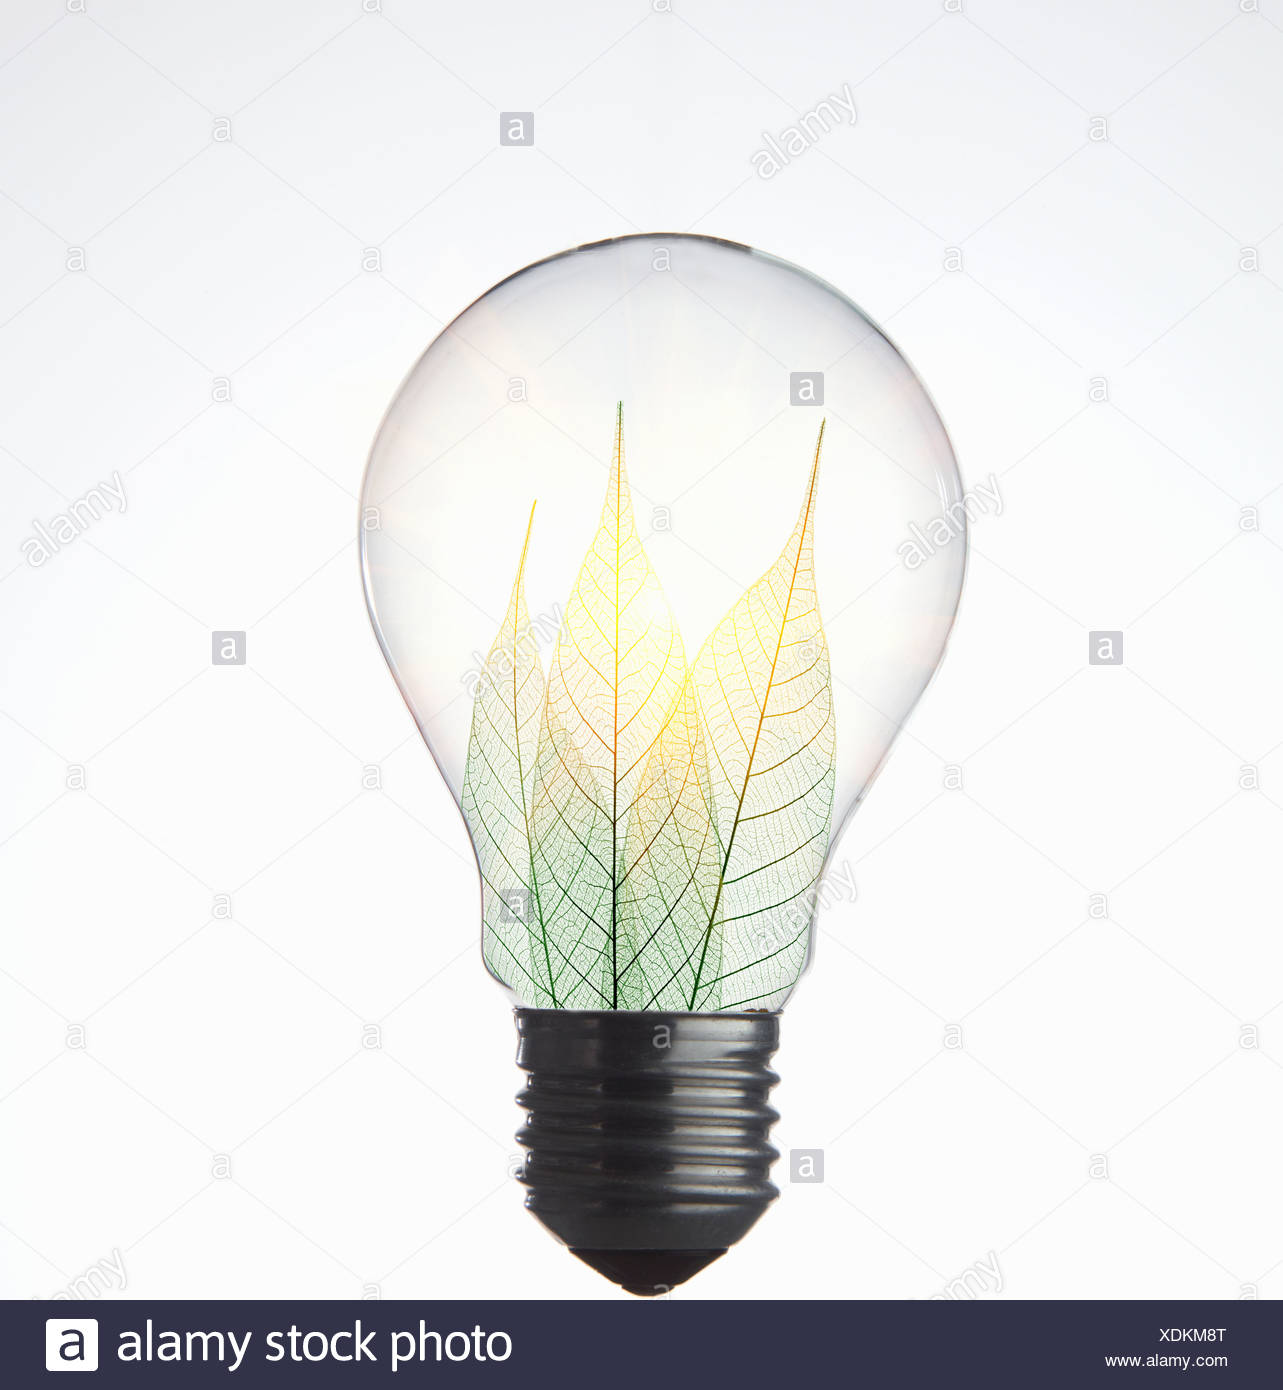 Leaves growing in light bulb - Stock Image